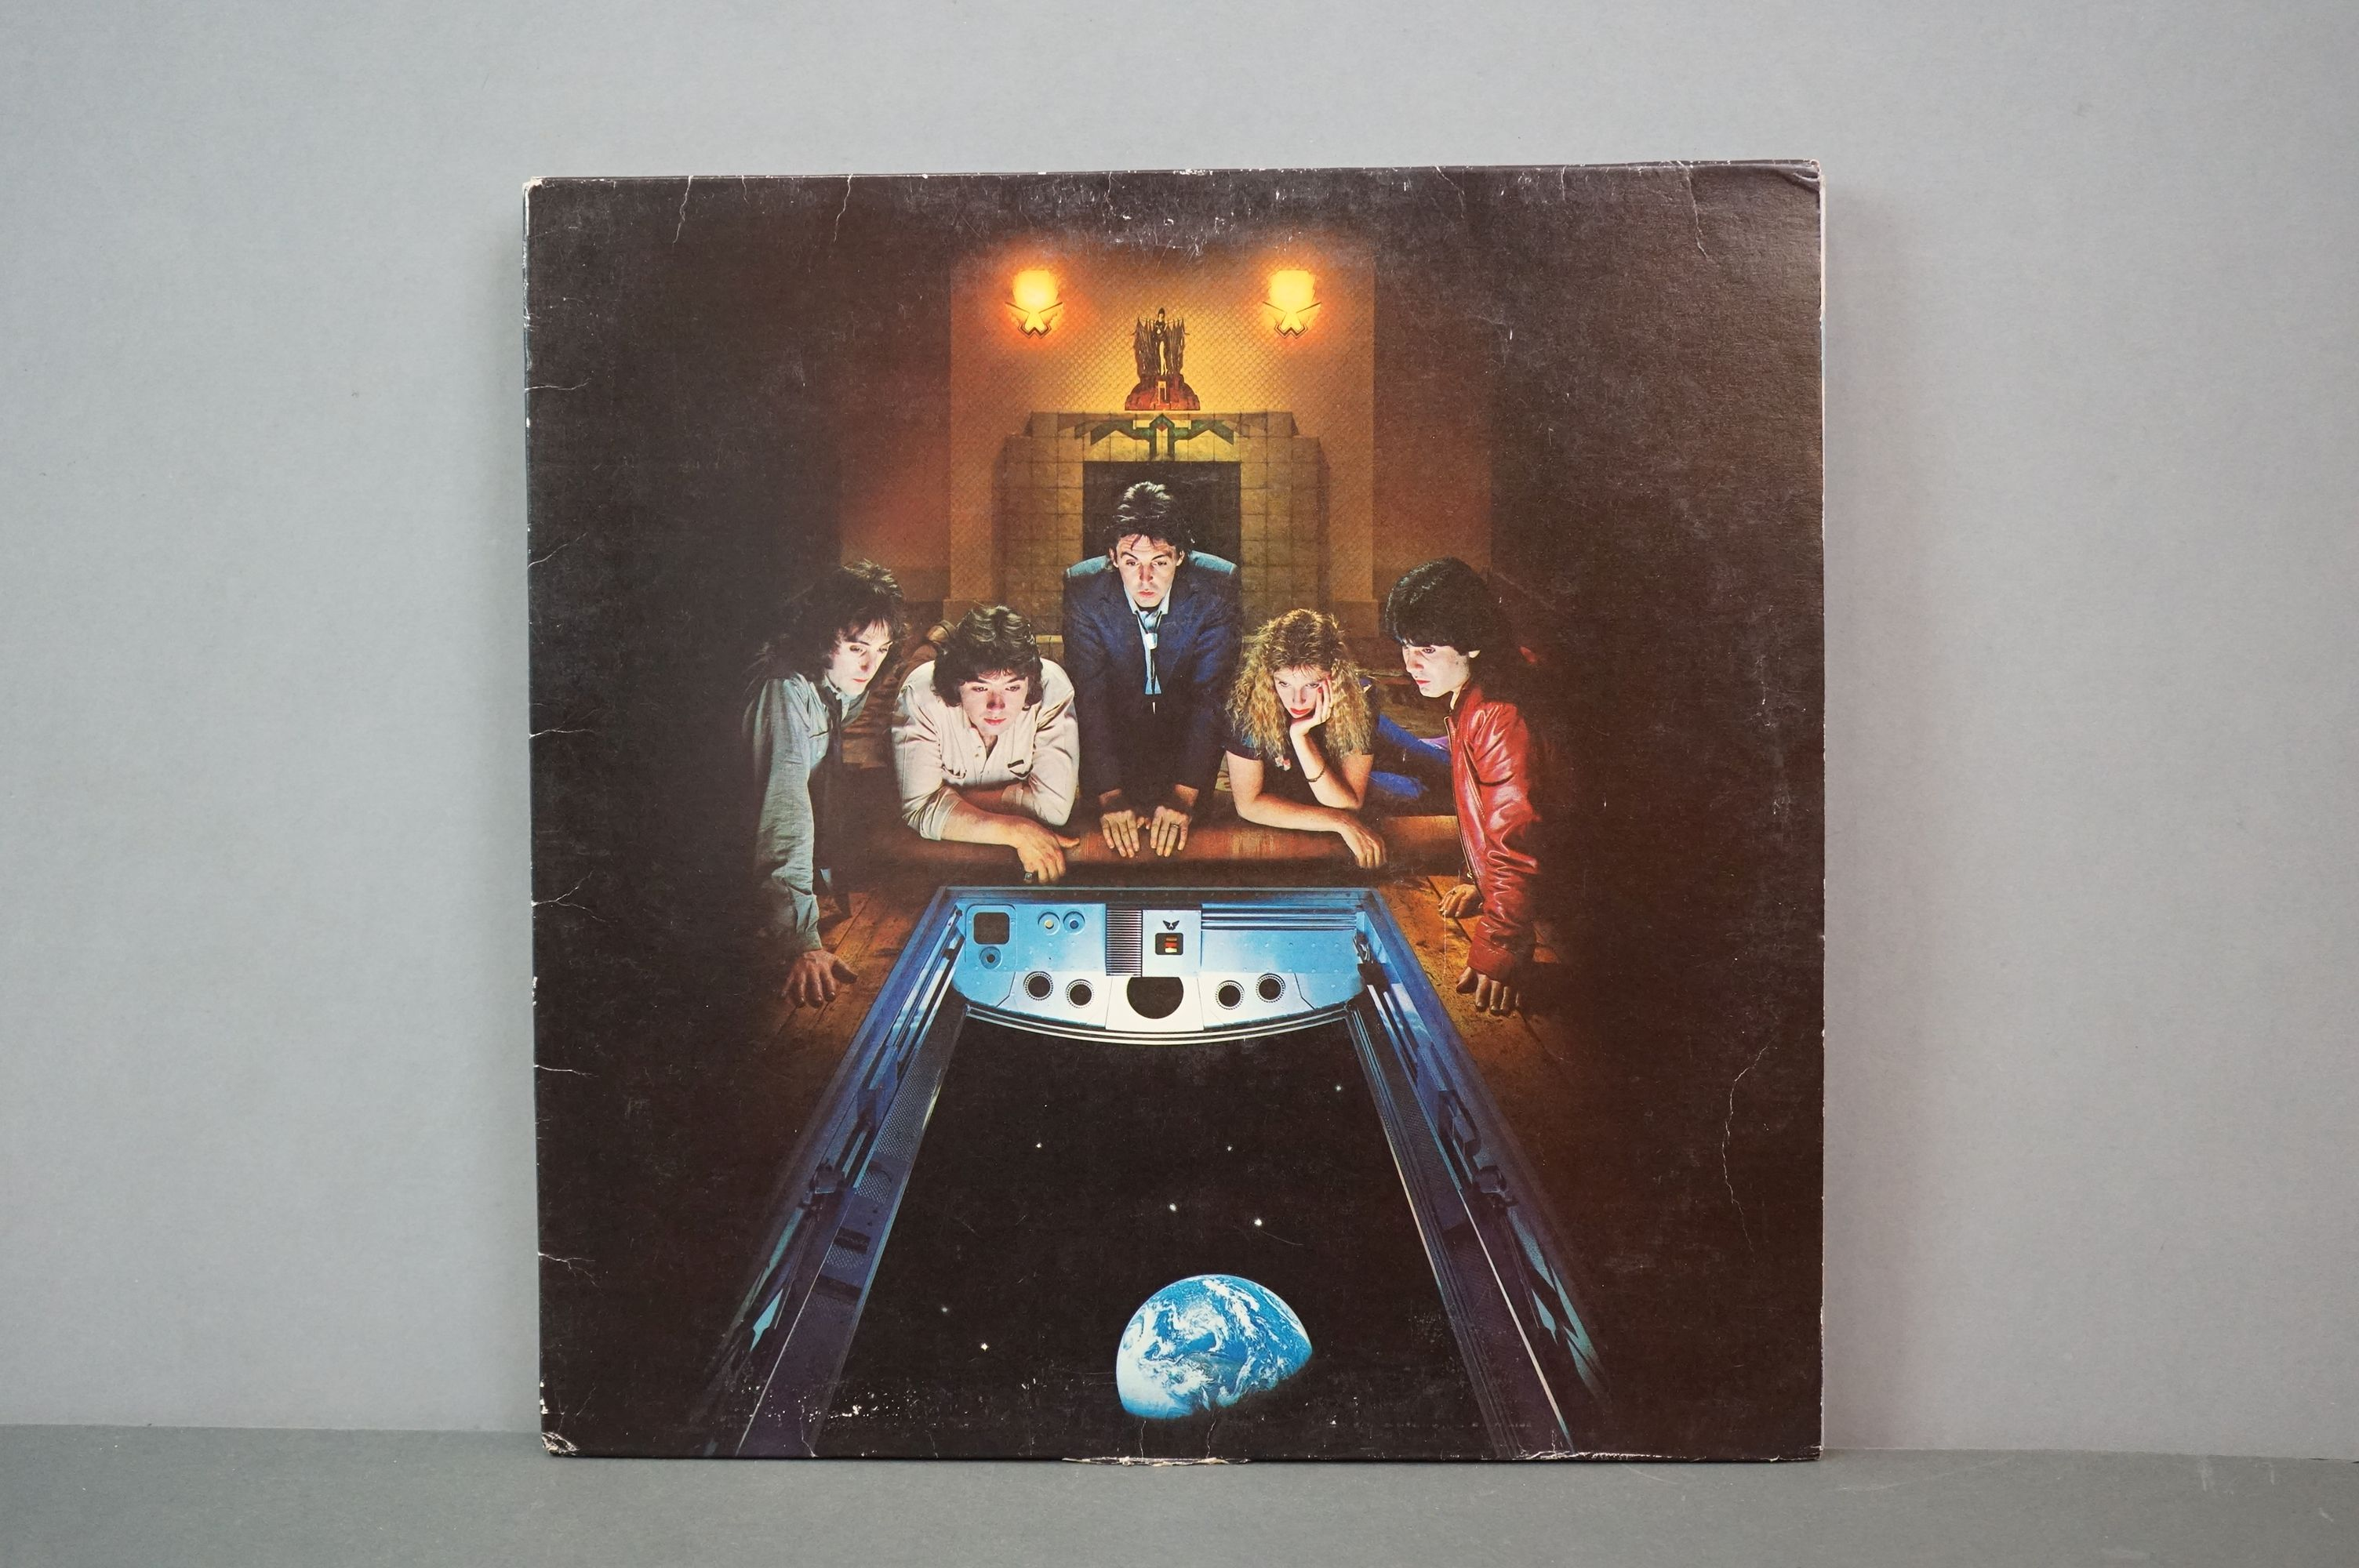 Vinyl - The Beatles and band members LPs to include 1962-1966 and 1967-1970 (black vinyl), Wings - Image 8 of 11